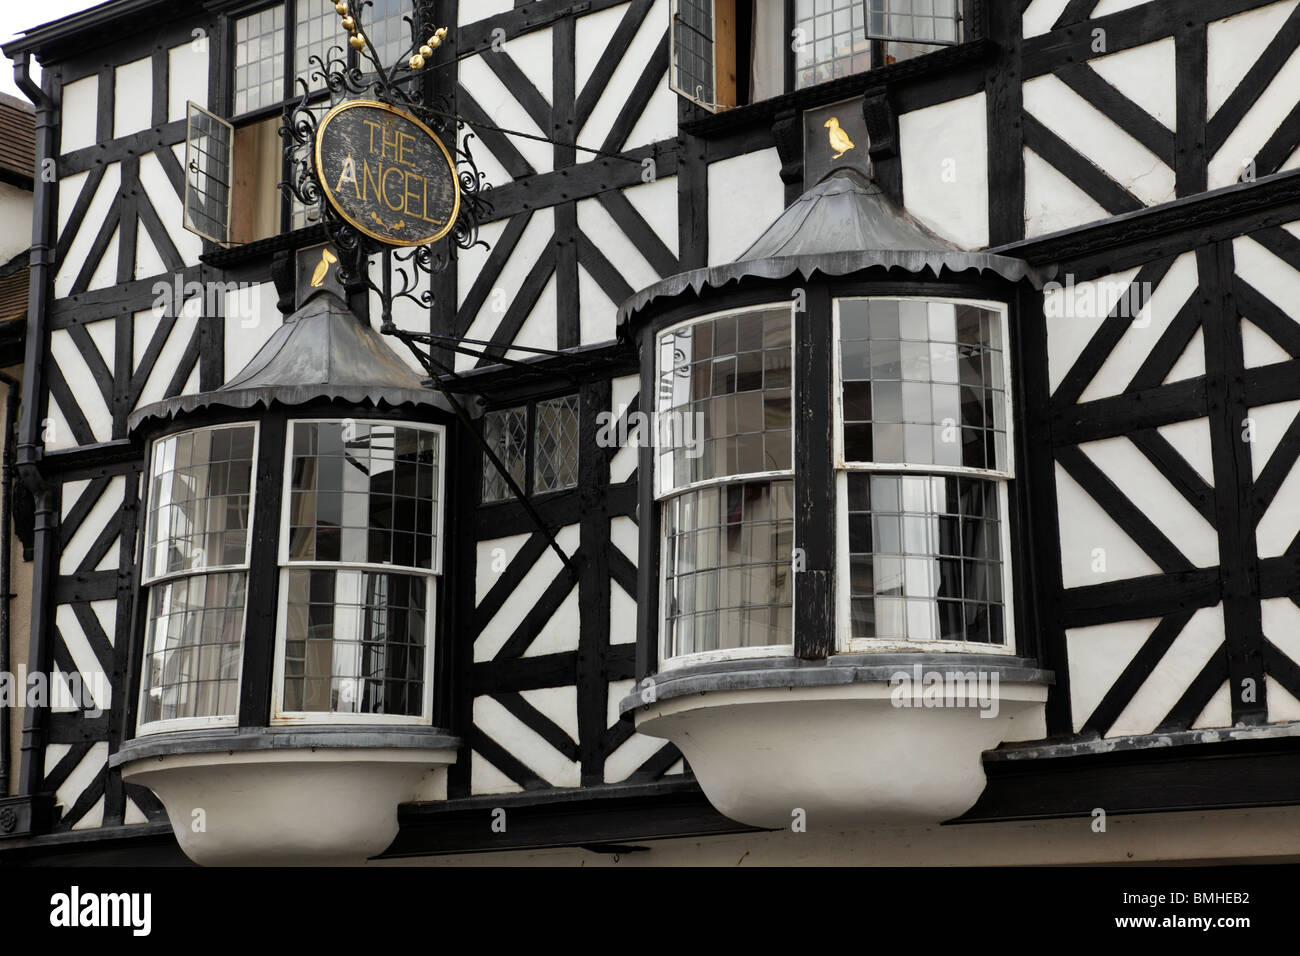 The Angel detail of bay windows on a black & white wattle & daub half timbered building on Broad Street - Stock Image